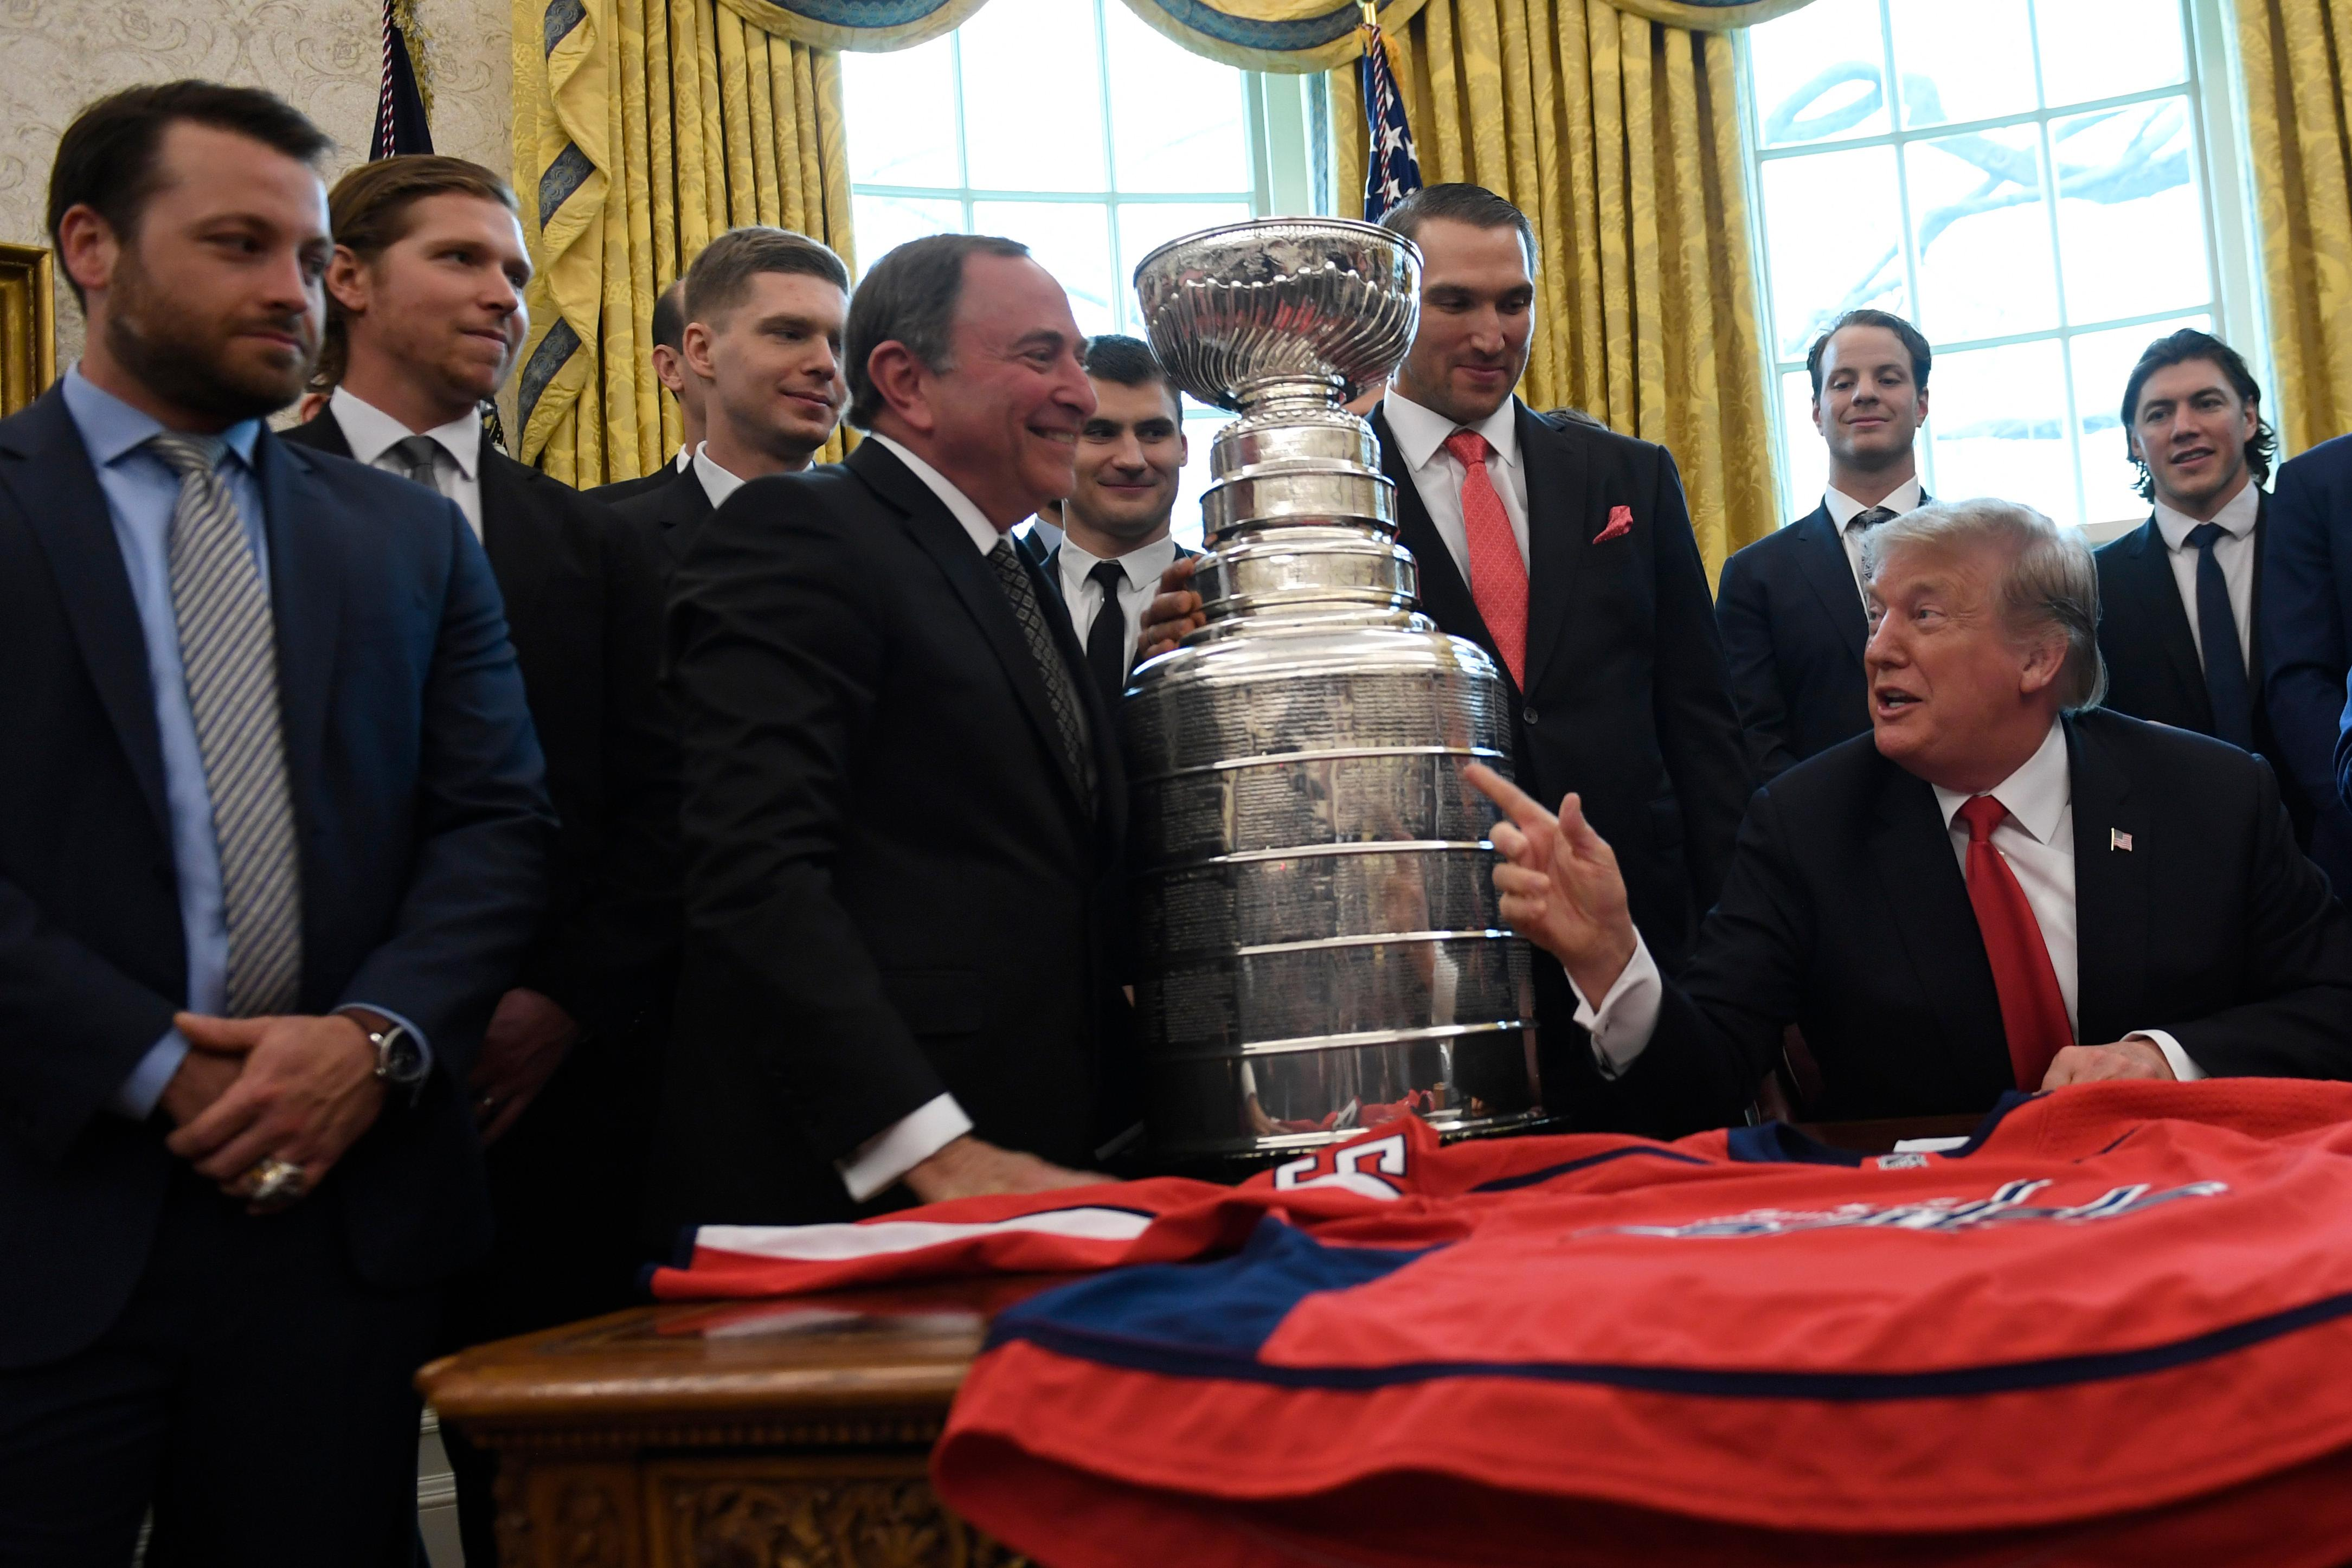 President Donald Trump, second from right, points to NHL Commissioner Gary Bettman, fourth from left, as they are surrounded by members of the 2018 Stanley Cup Champion Washington Capitals hockey team in the Oval Office of the White House in Washington, Monday, March 25, 2019. (AP Photo/Susan Walsh)